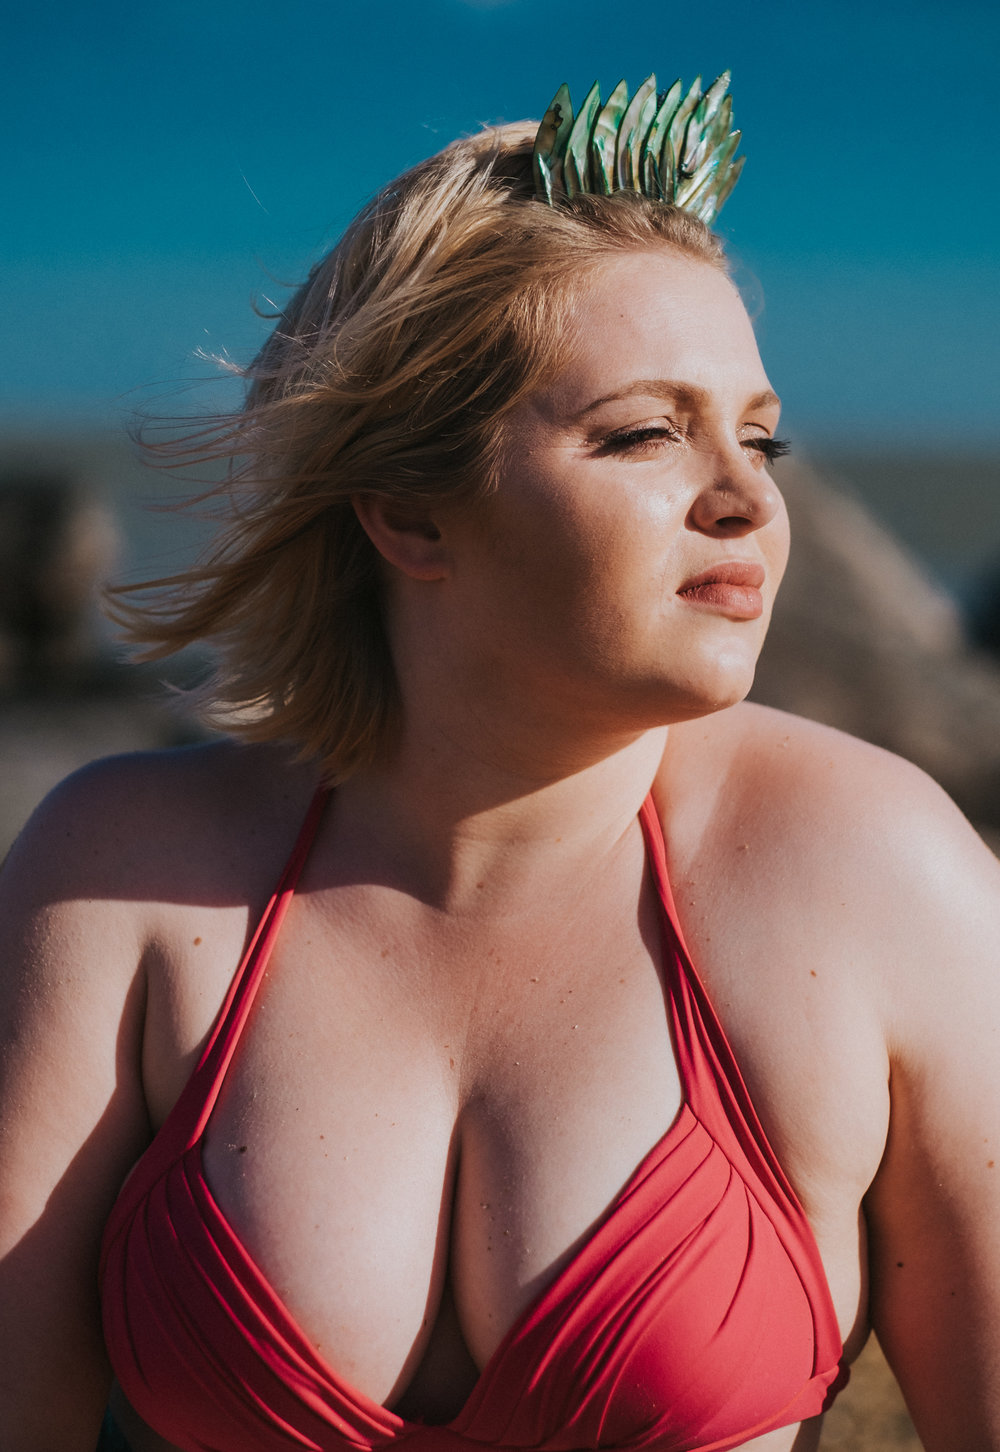 Body-Positive-Mermaids-Grace-Elizabeth-Mermaiding-UK-Alternative-Wedding-Photographer-Colchester-Essex-Suffolk-Norfolk-Devon (48 of 59).jpg